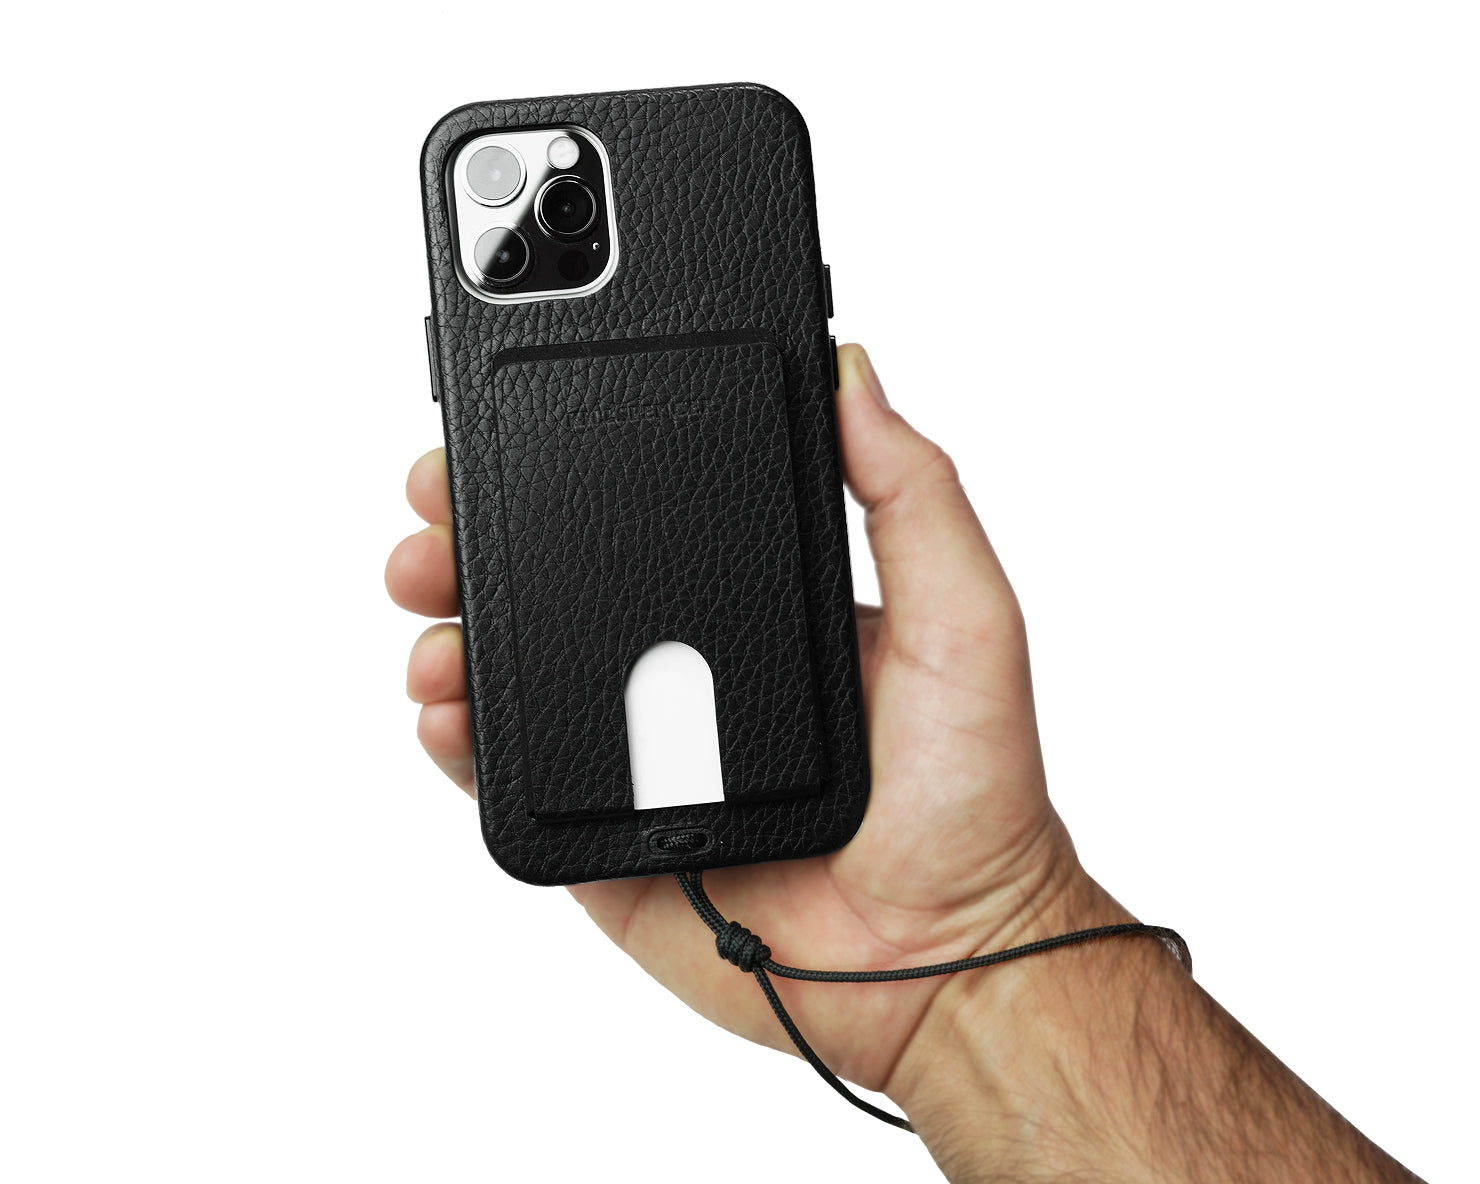 CARD CARRIER for iPhone 12 [PRE-ORDER] | KILLSPENCER® - Black Leather